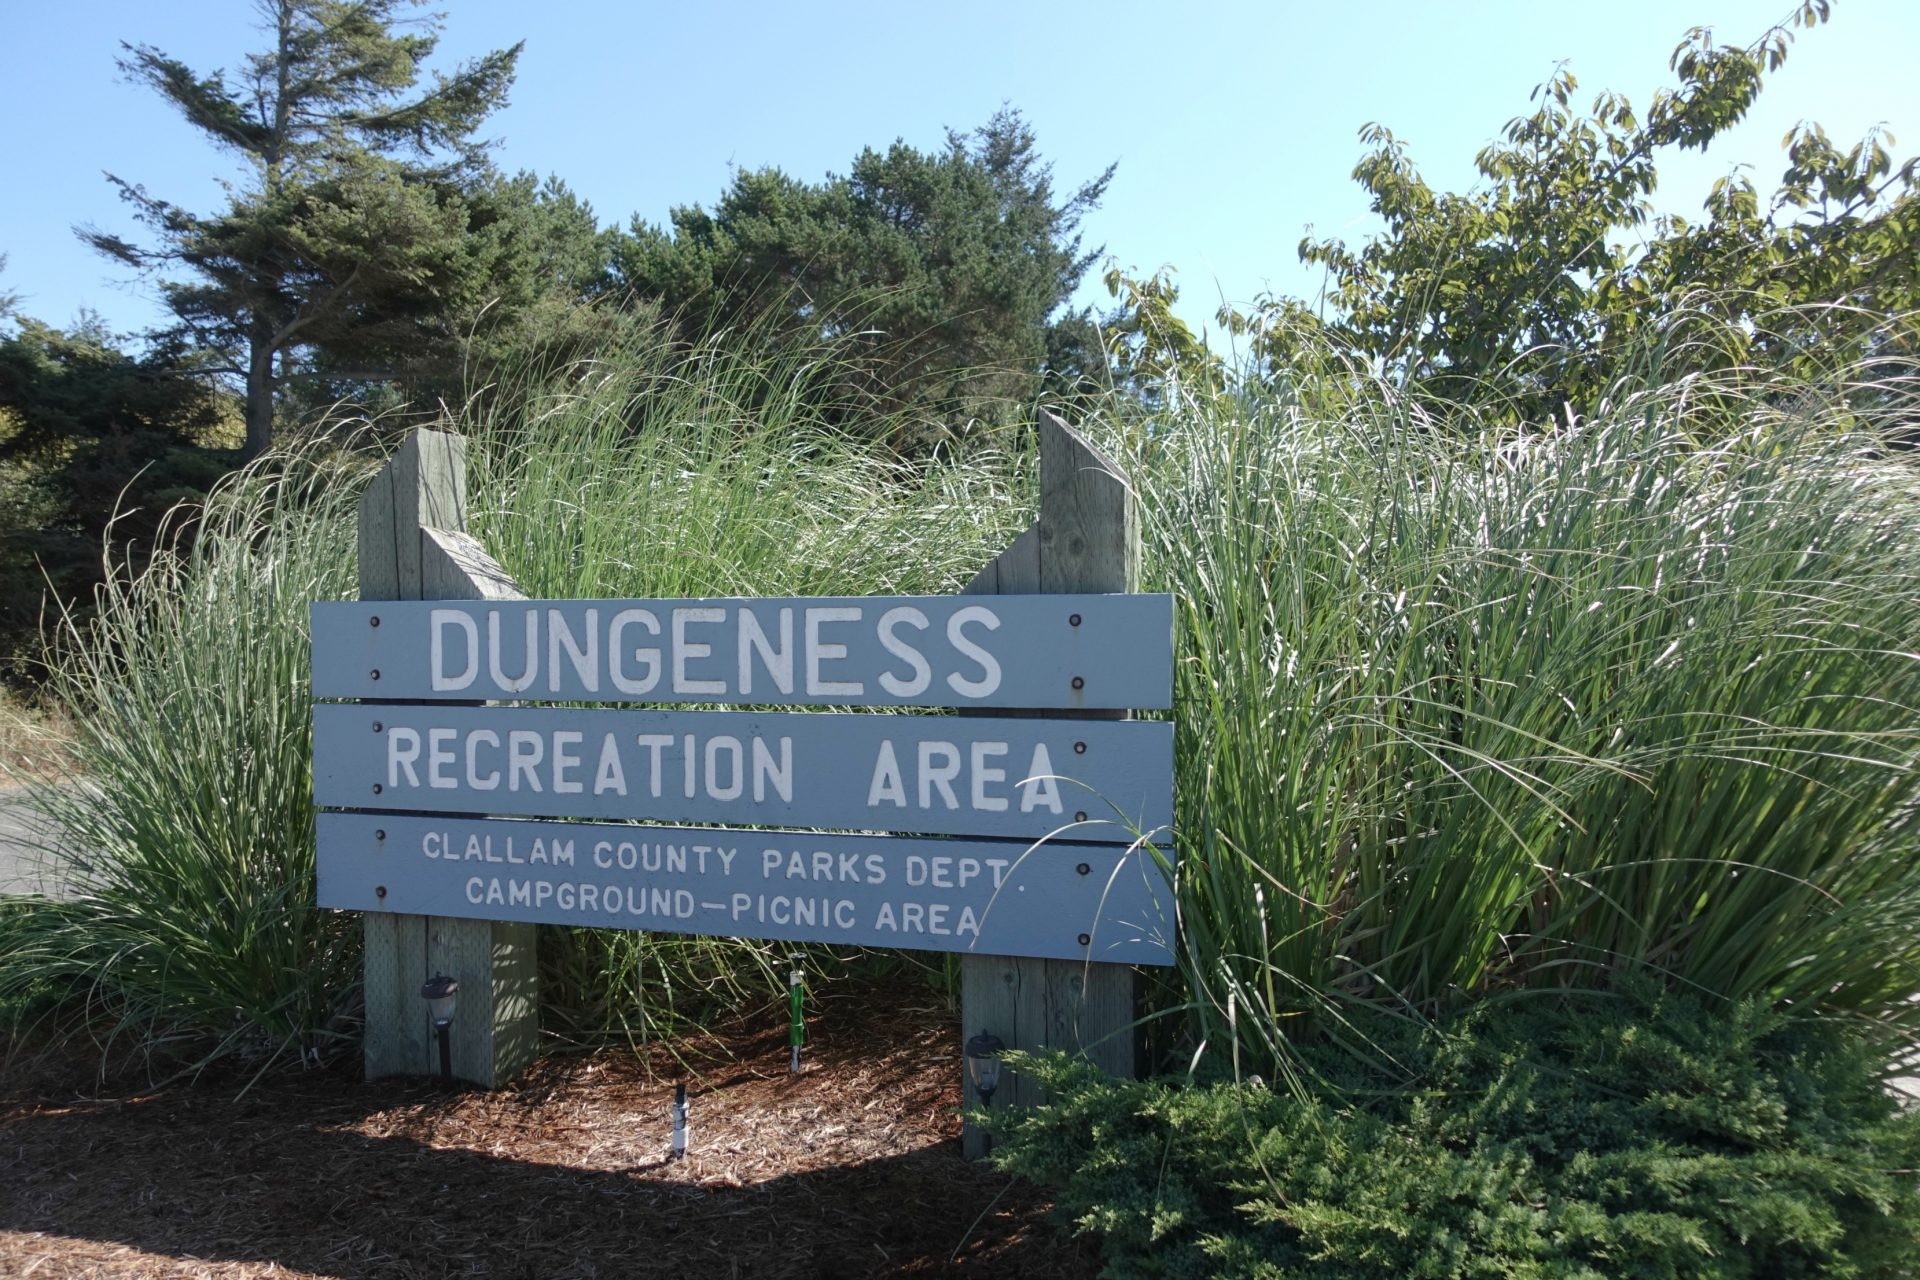 Dungeness Recreation Area Campground near Olympic National Park